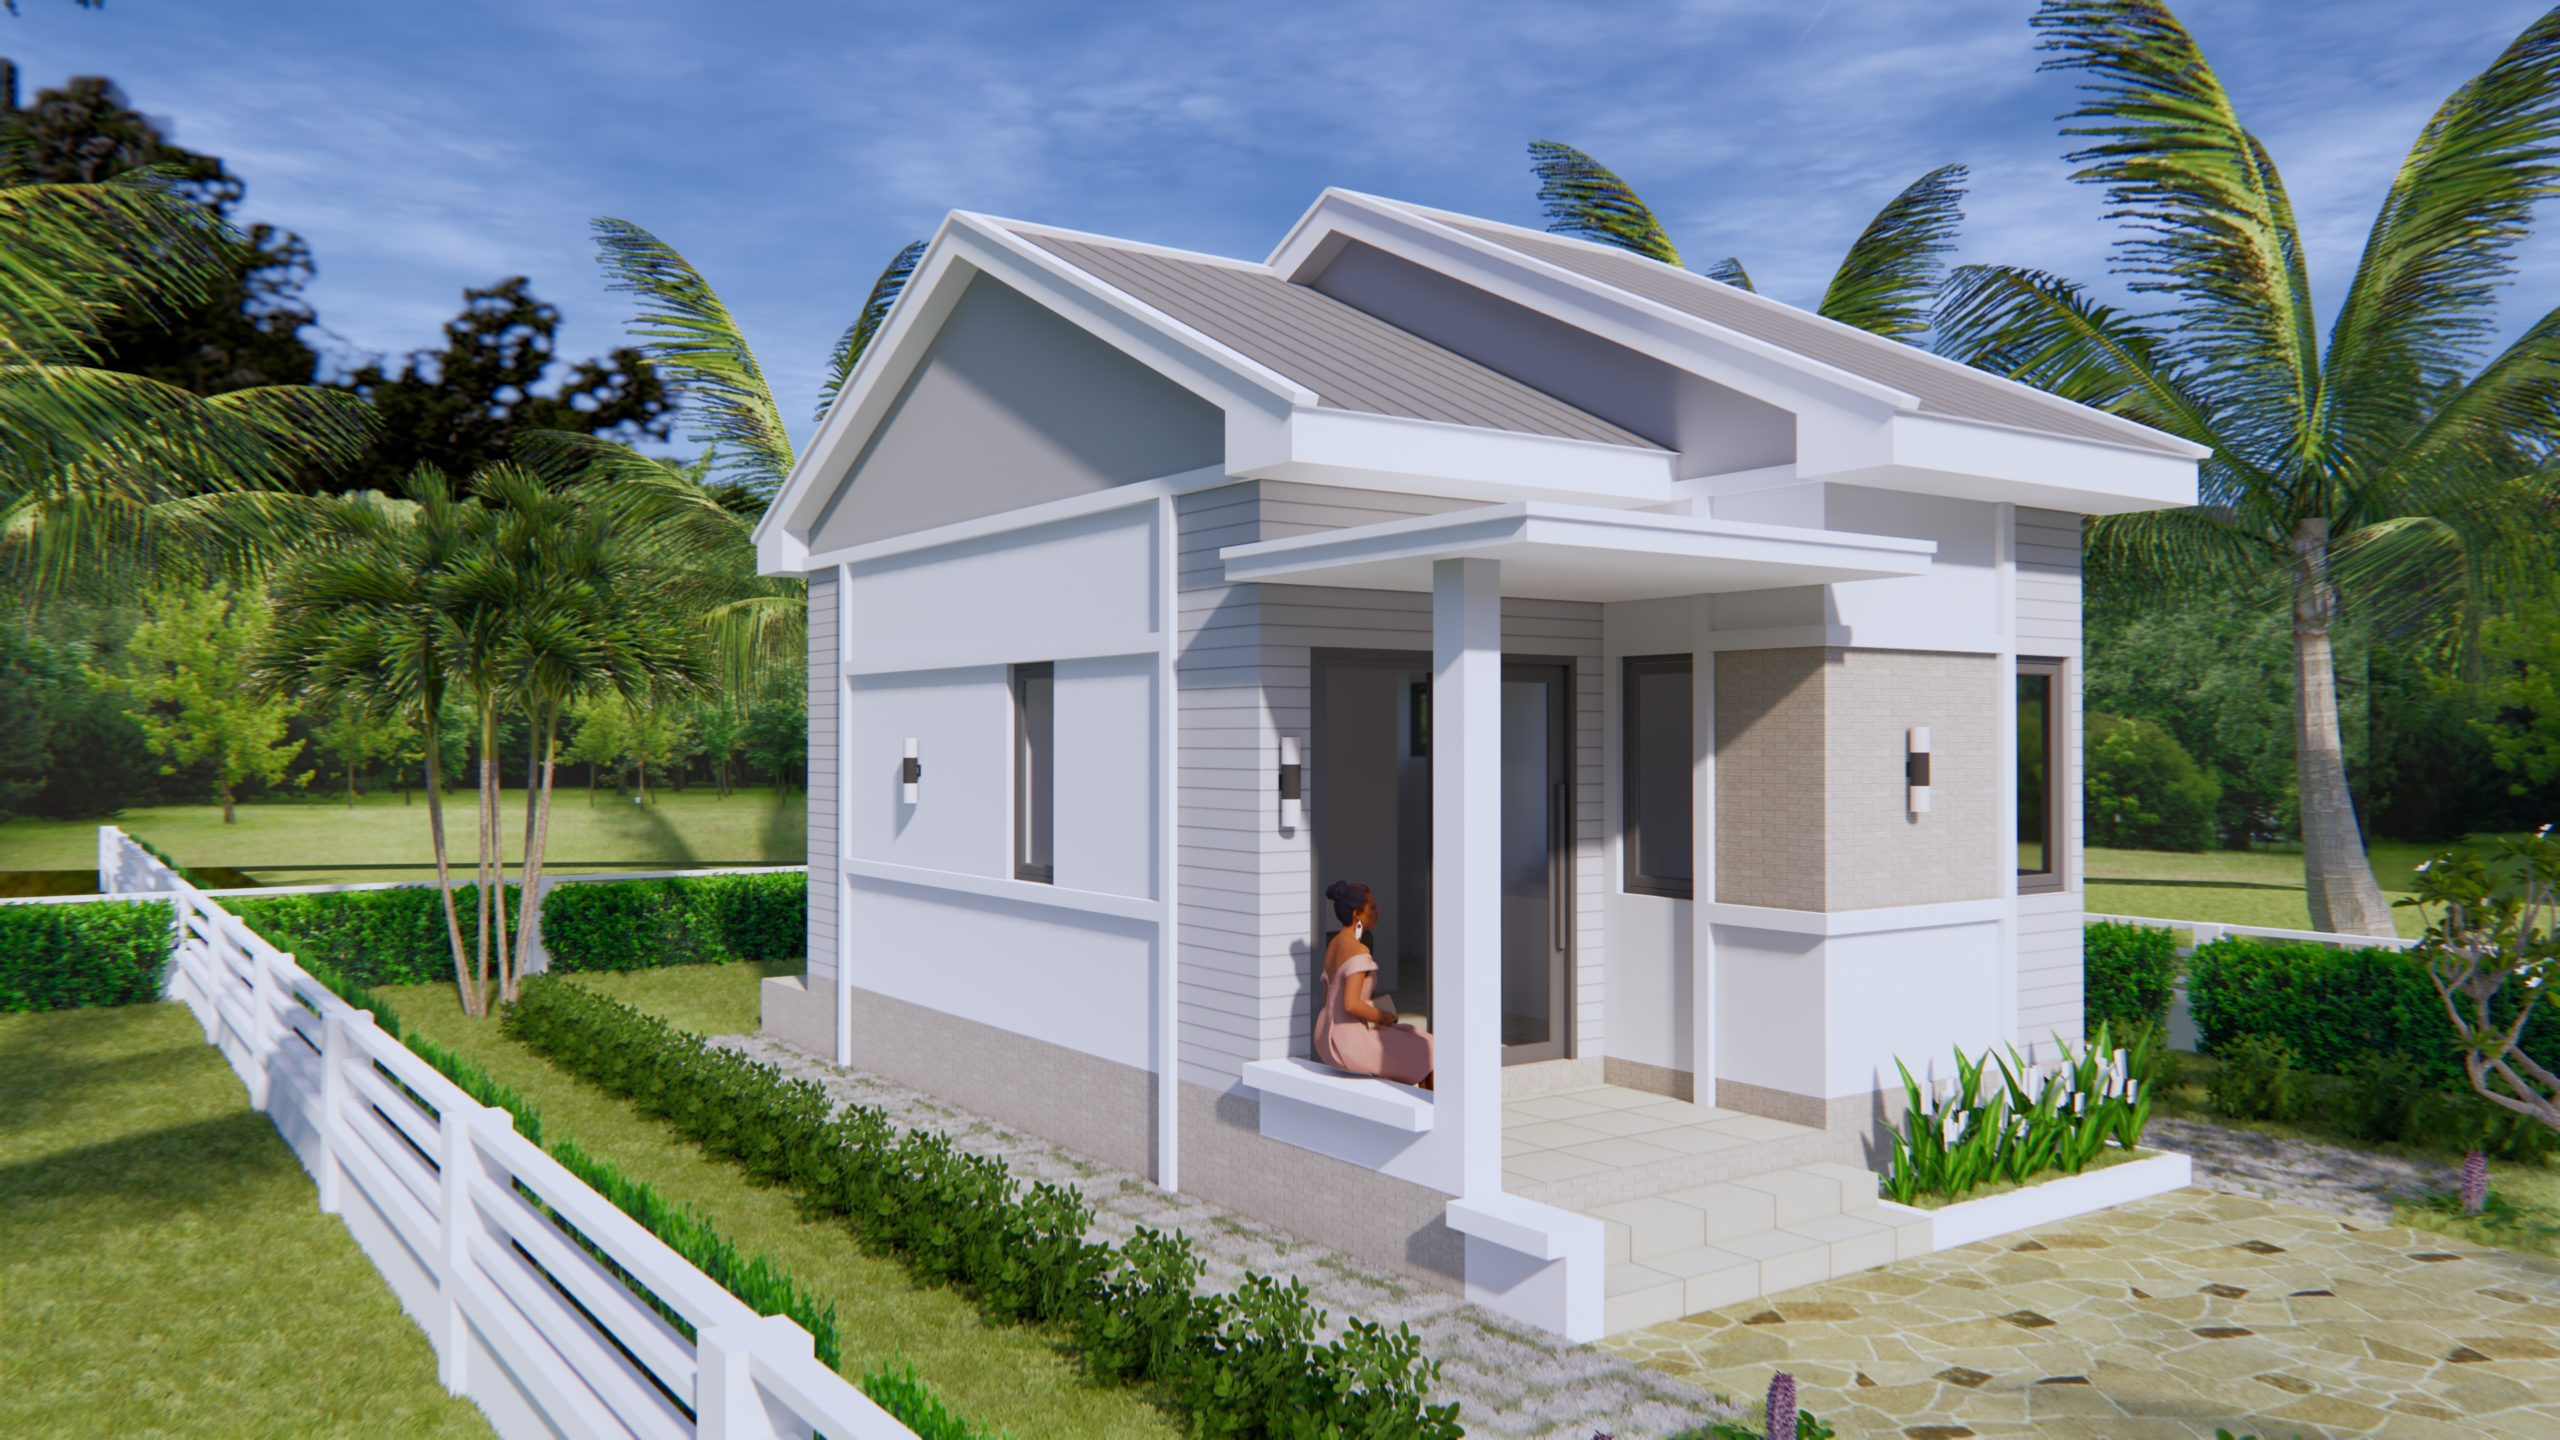 one bedroom house plans 45x75 gable roof  tiny house plans